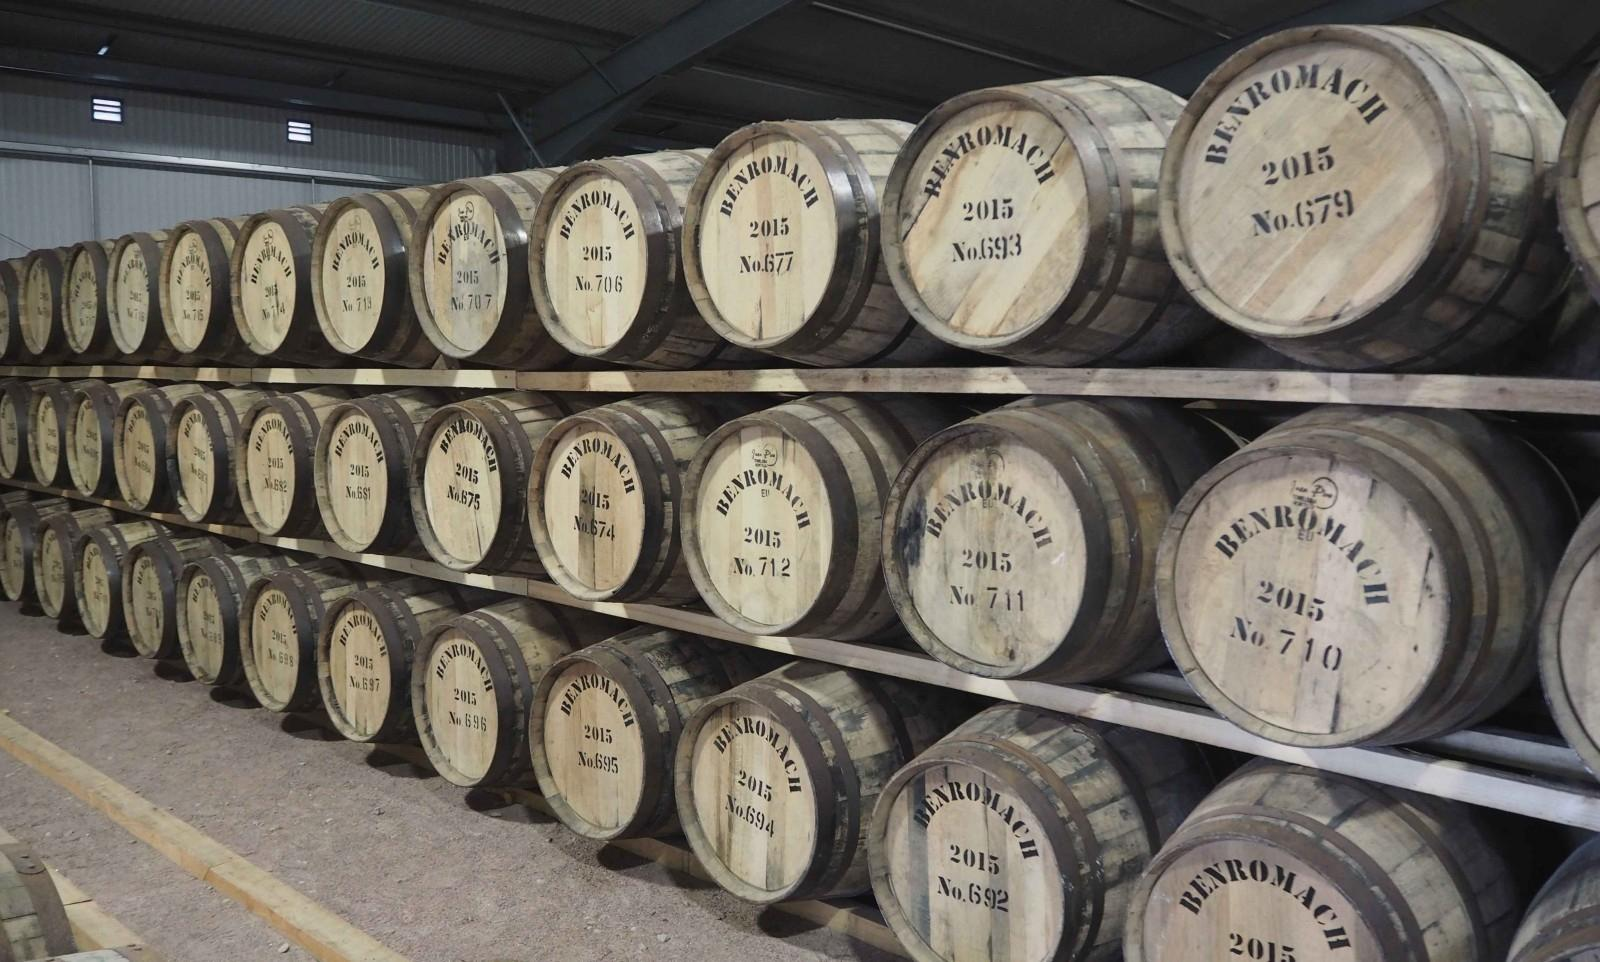 Benromach Whisky Distillery - PHOTO: FLICKR/ Ungry Young Man